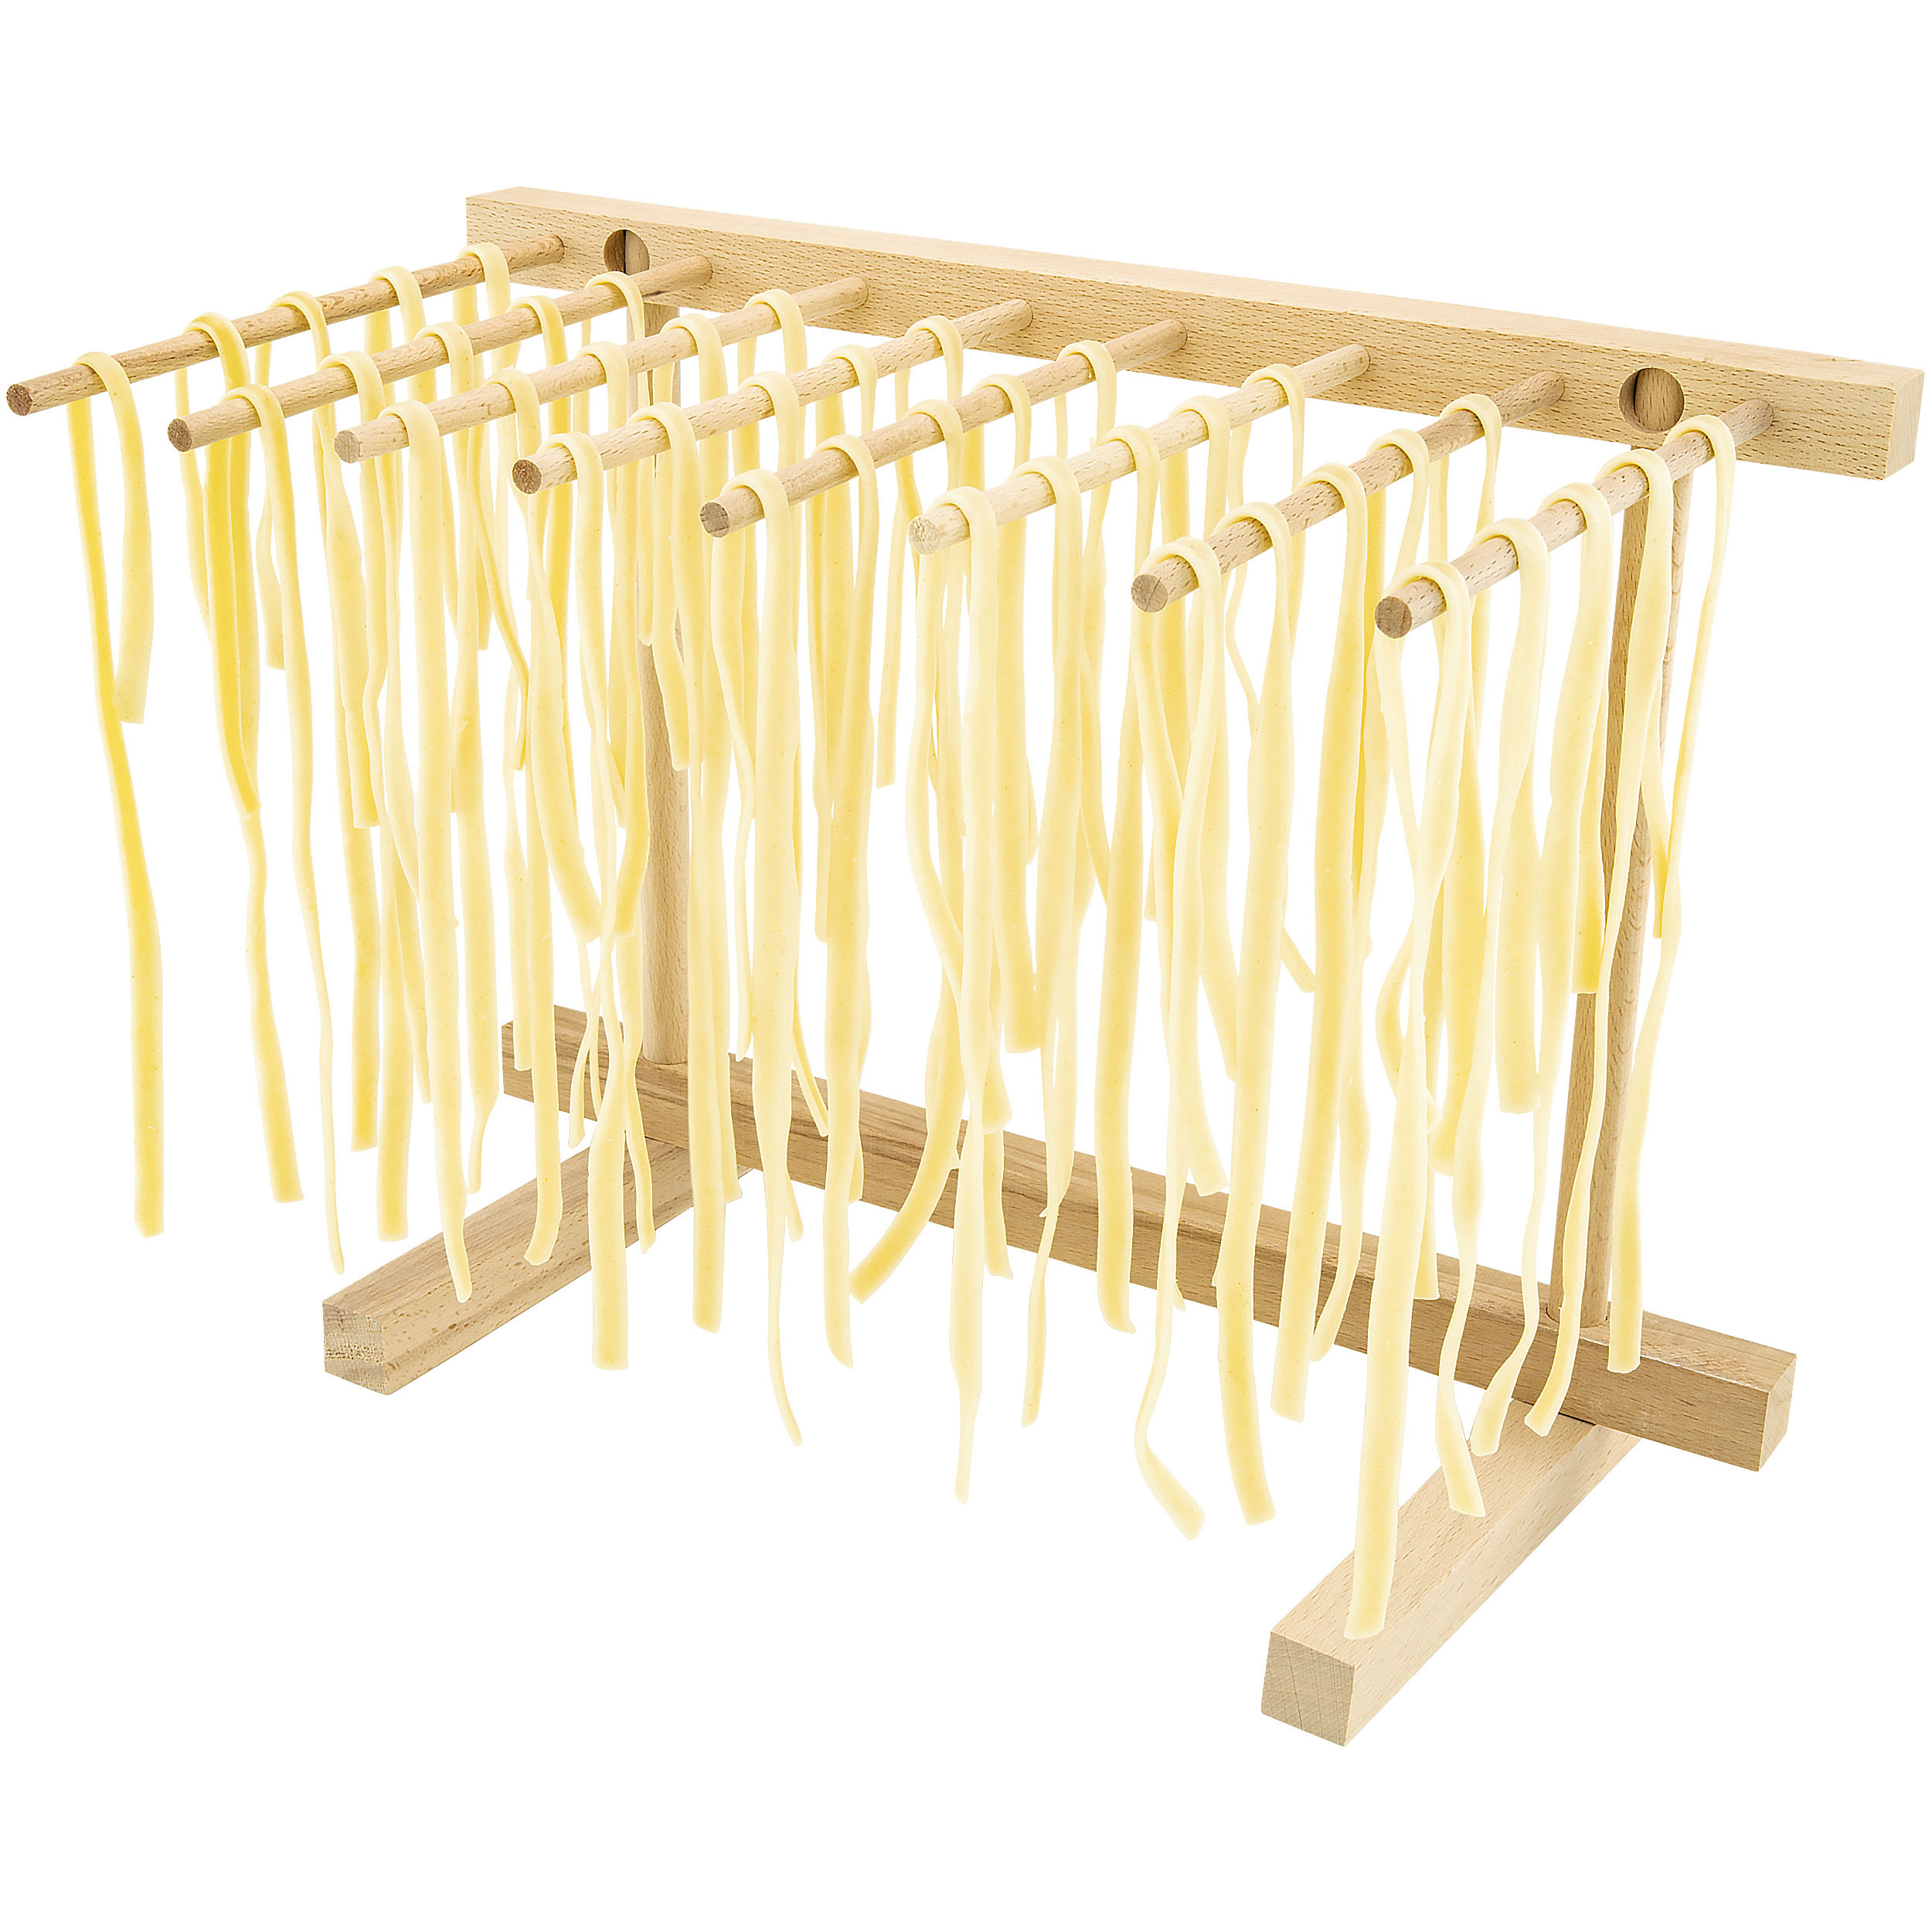 Southern Homewares SH-10153 Collapsible Wooden Pasta Drying Rack, Natural Beechwood, One Size, Brown